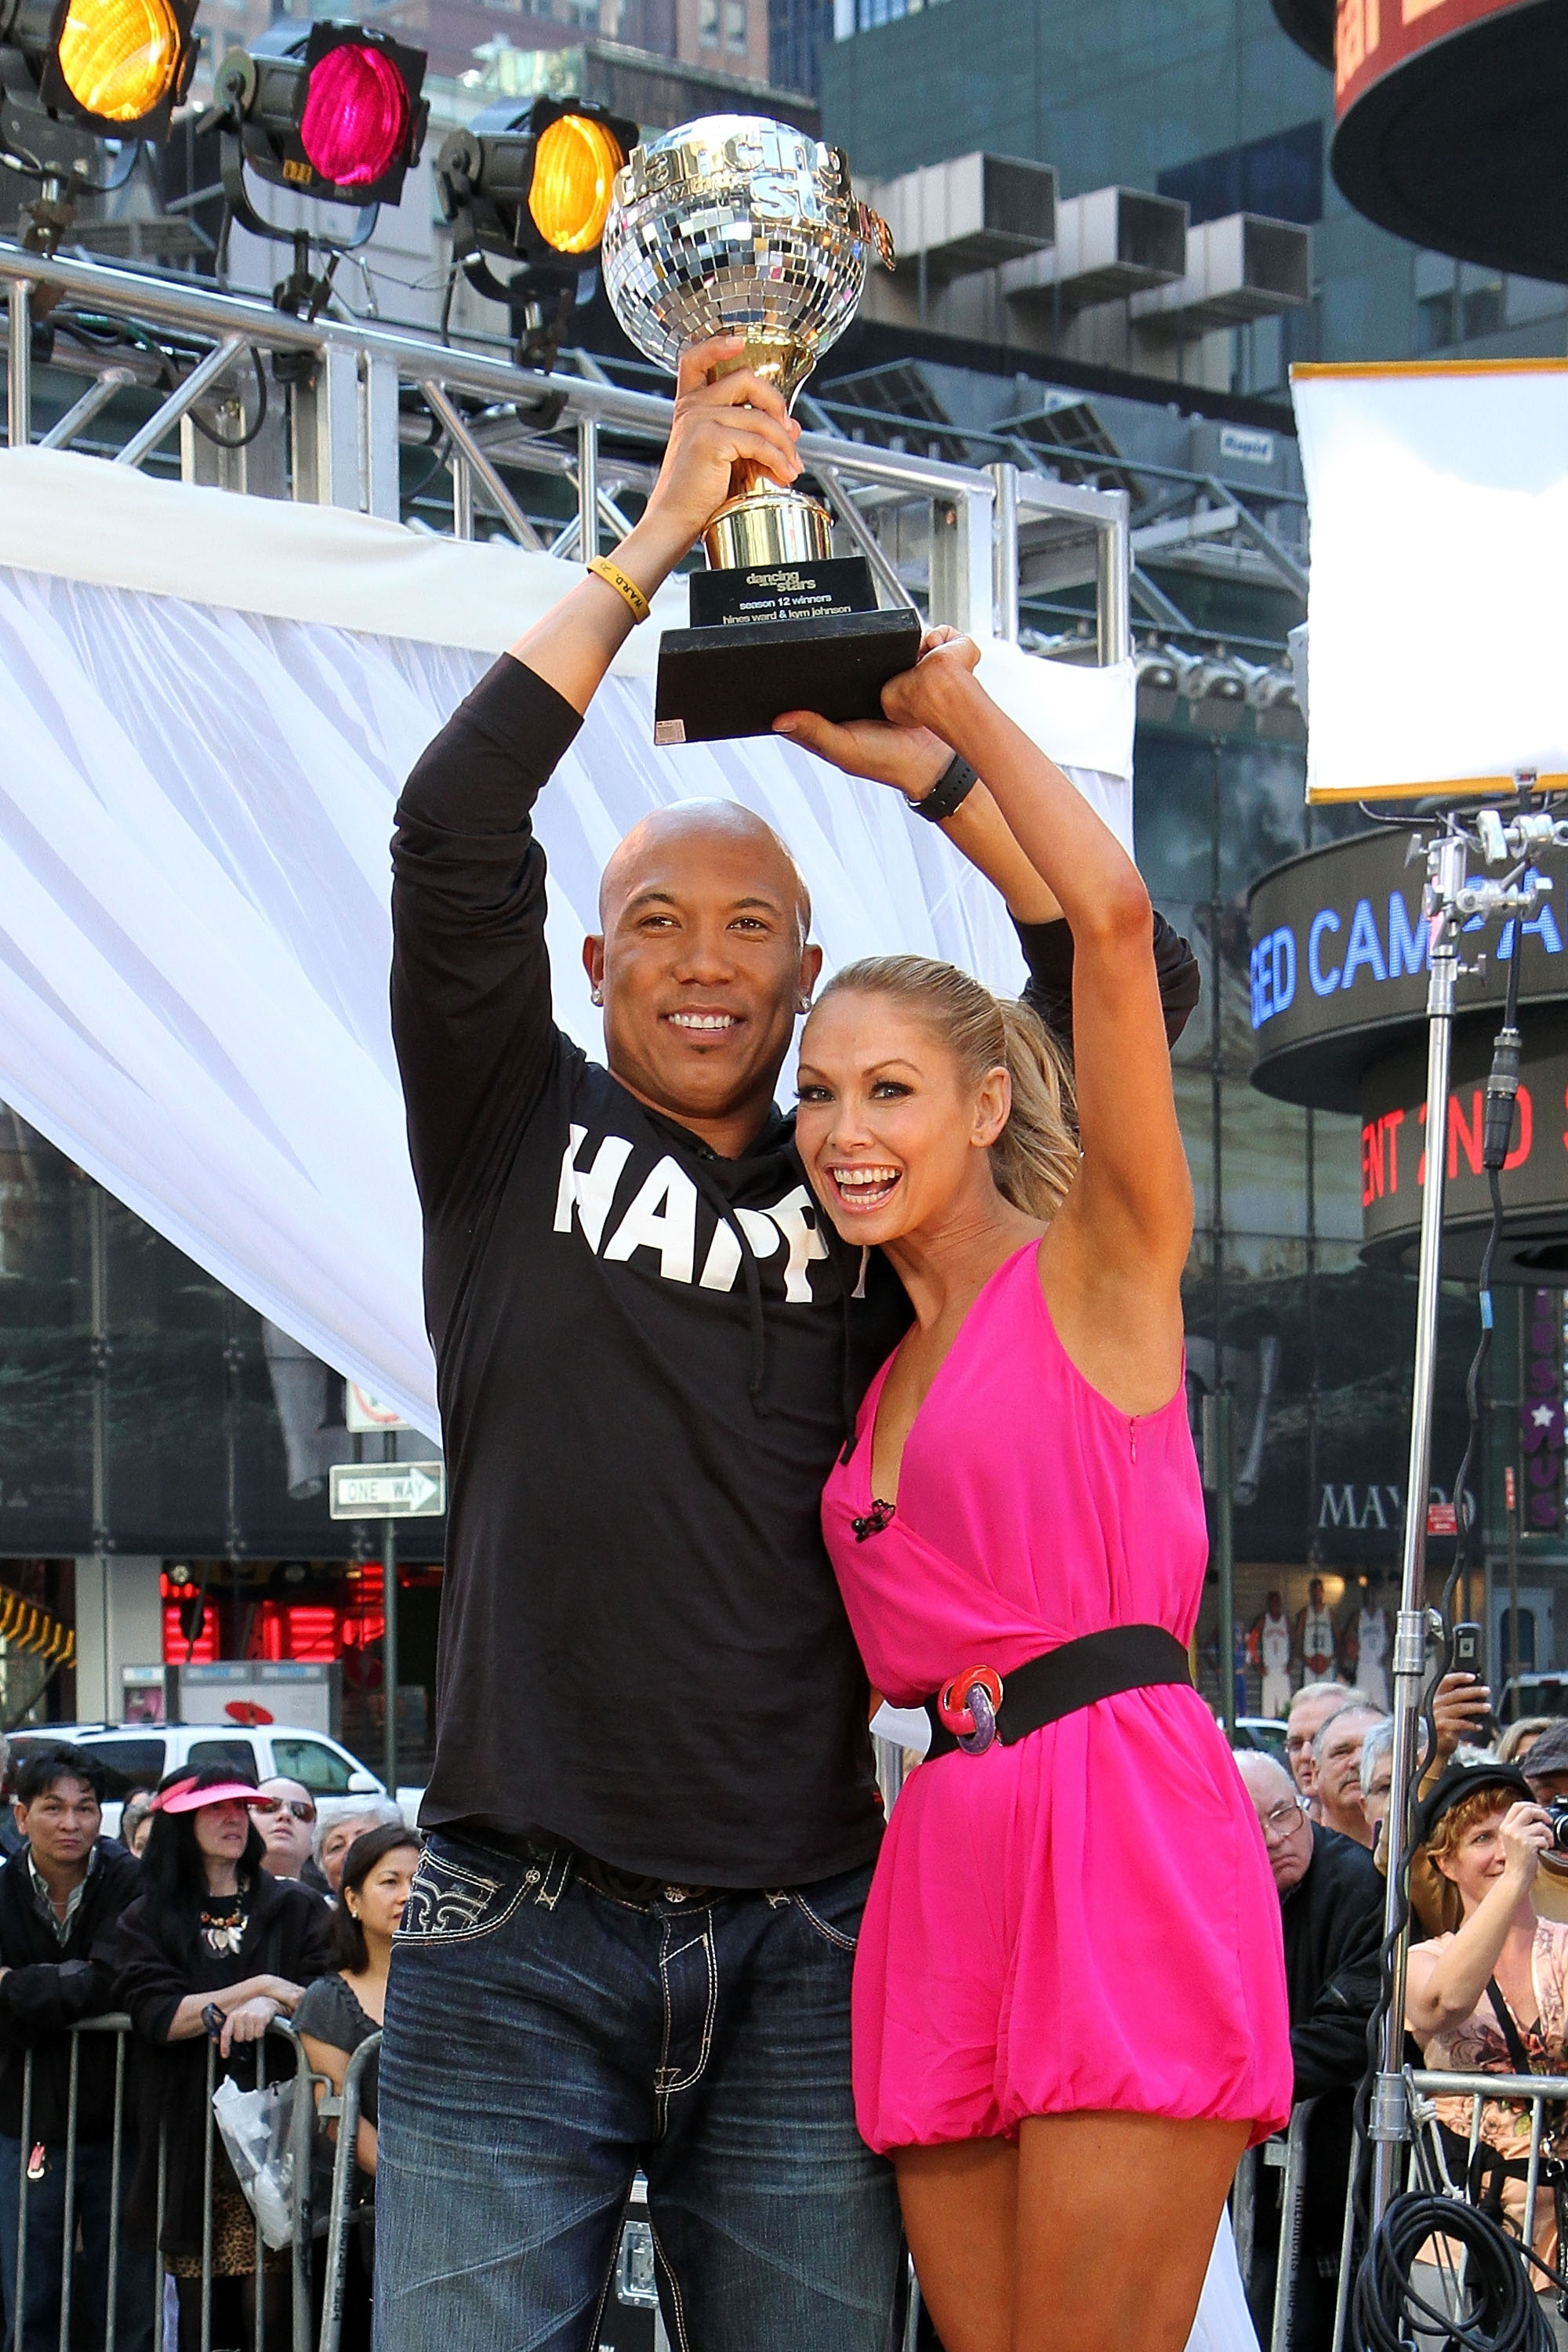 Hines Ward 'Just Ecstatic' Over 'Dancing With The Stars' Win